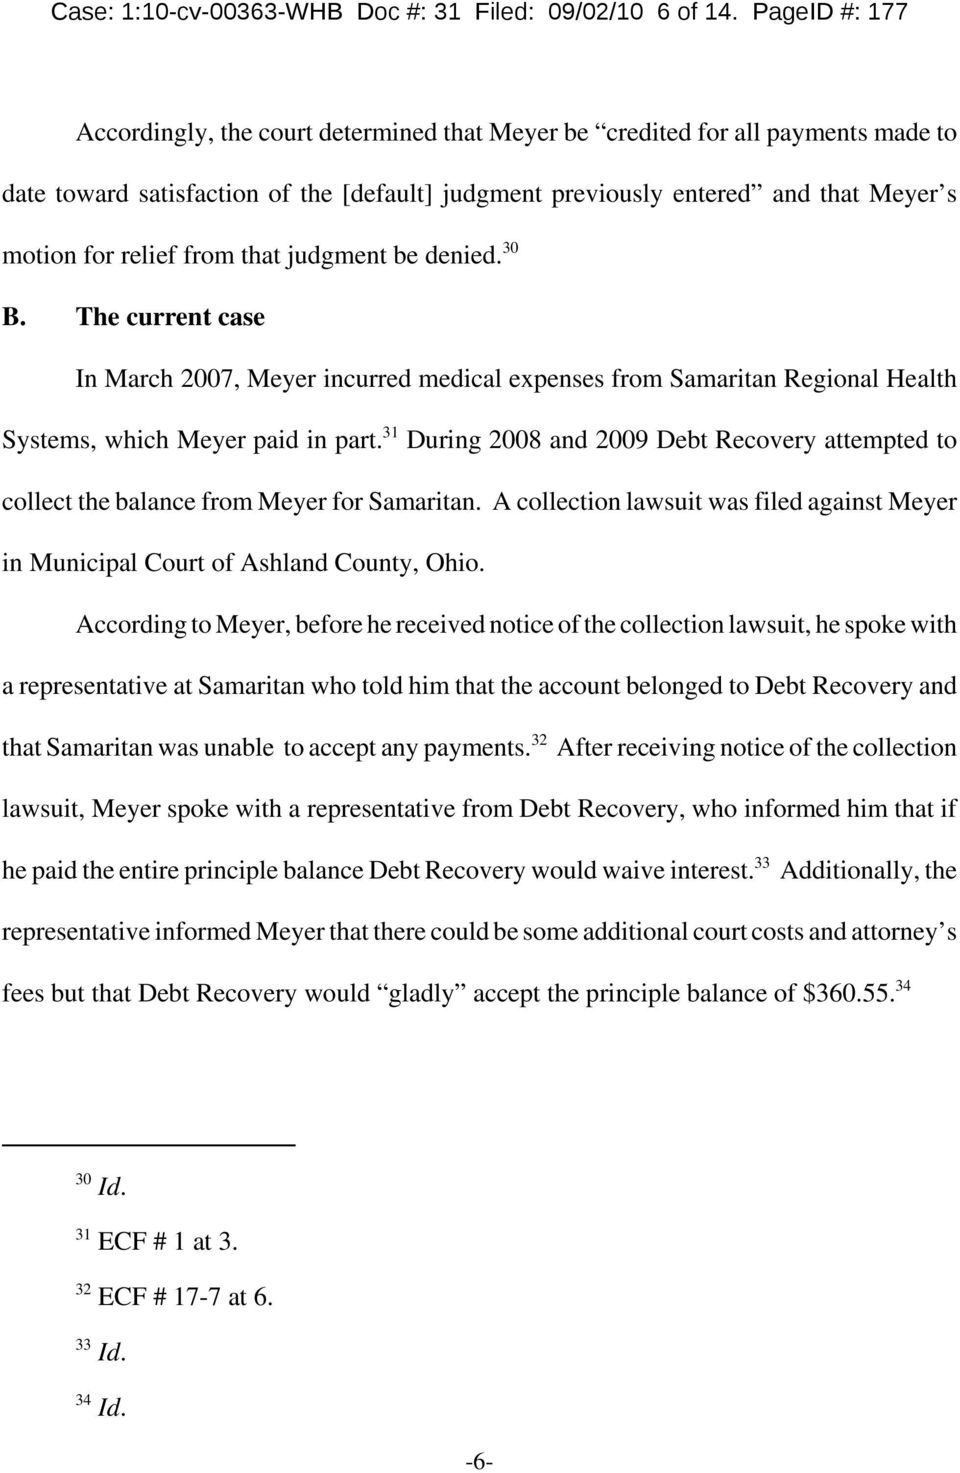 relief from that judgment be denied. 30 B. The current case In March 2007, Meyer incurred medical expenses from Samaritan Regional Health Systems, which Meyer paid in part.